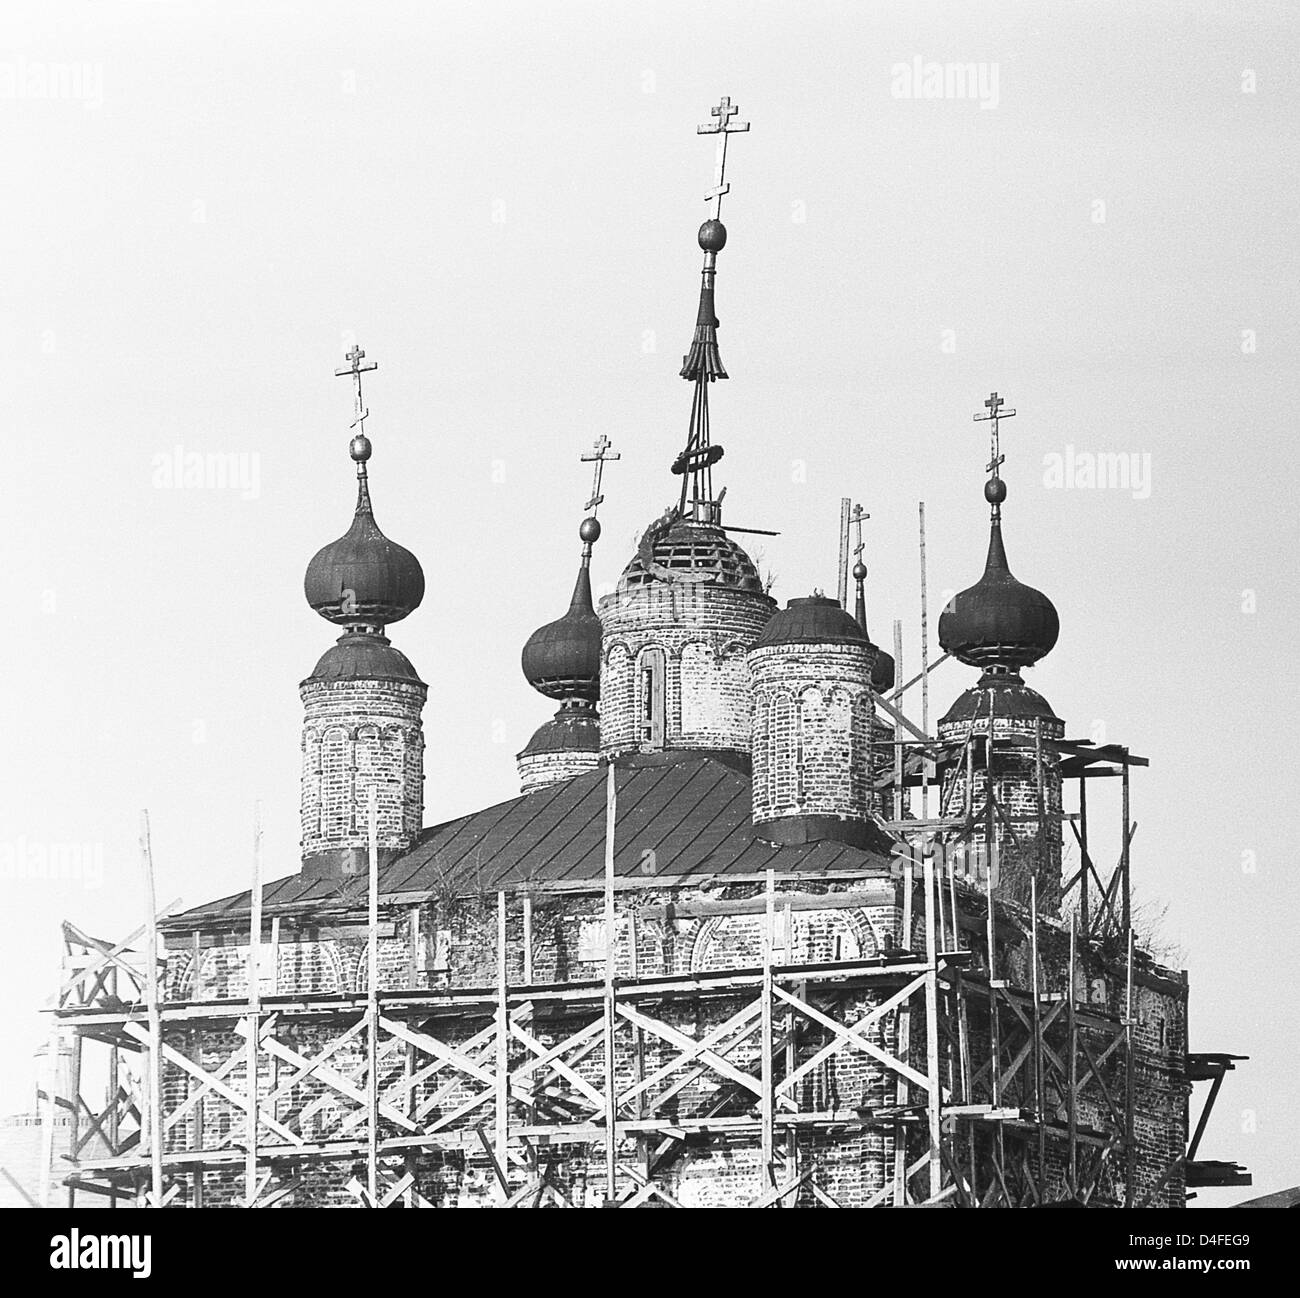 Holy Trinity Monastery Belopesotsky (1380) - Women's Orthodox Monastery of the Russian Orthodox Church. - Stock Image